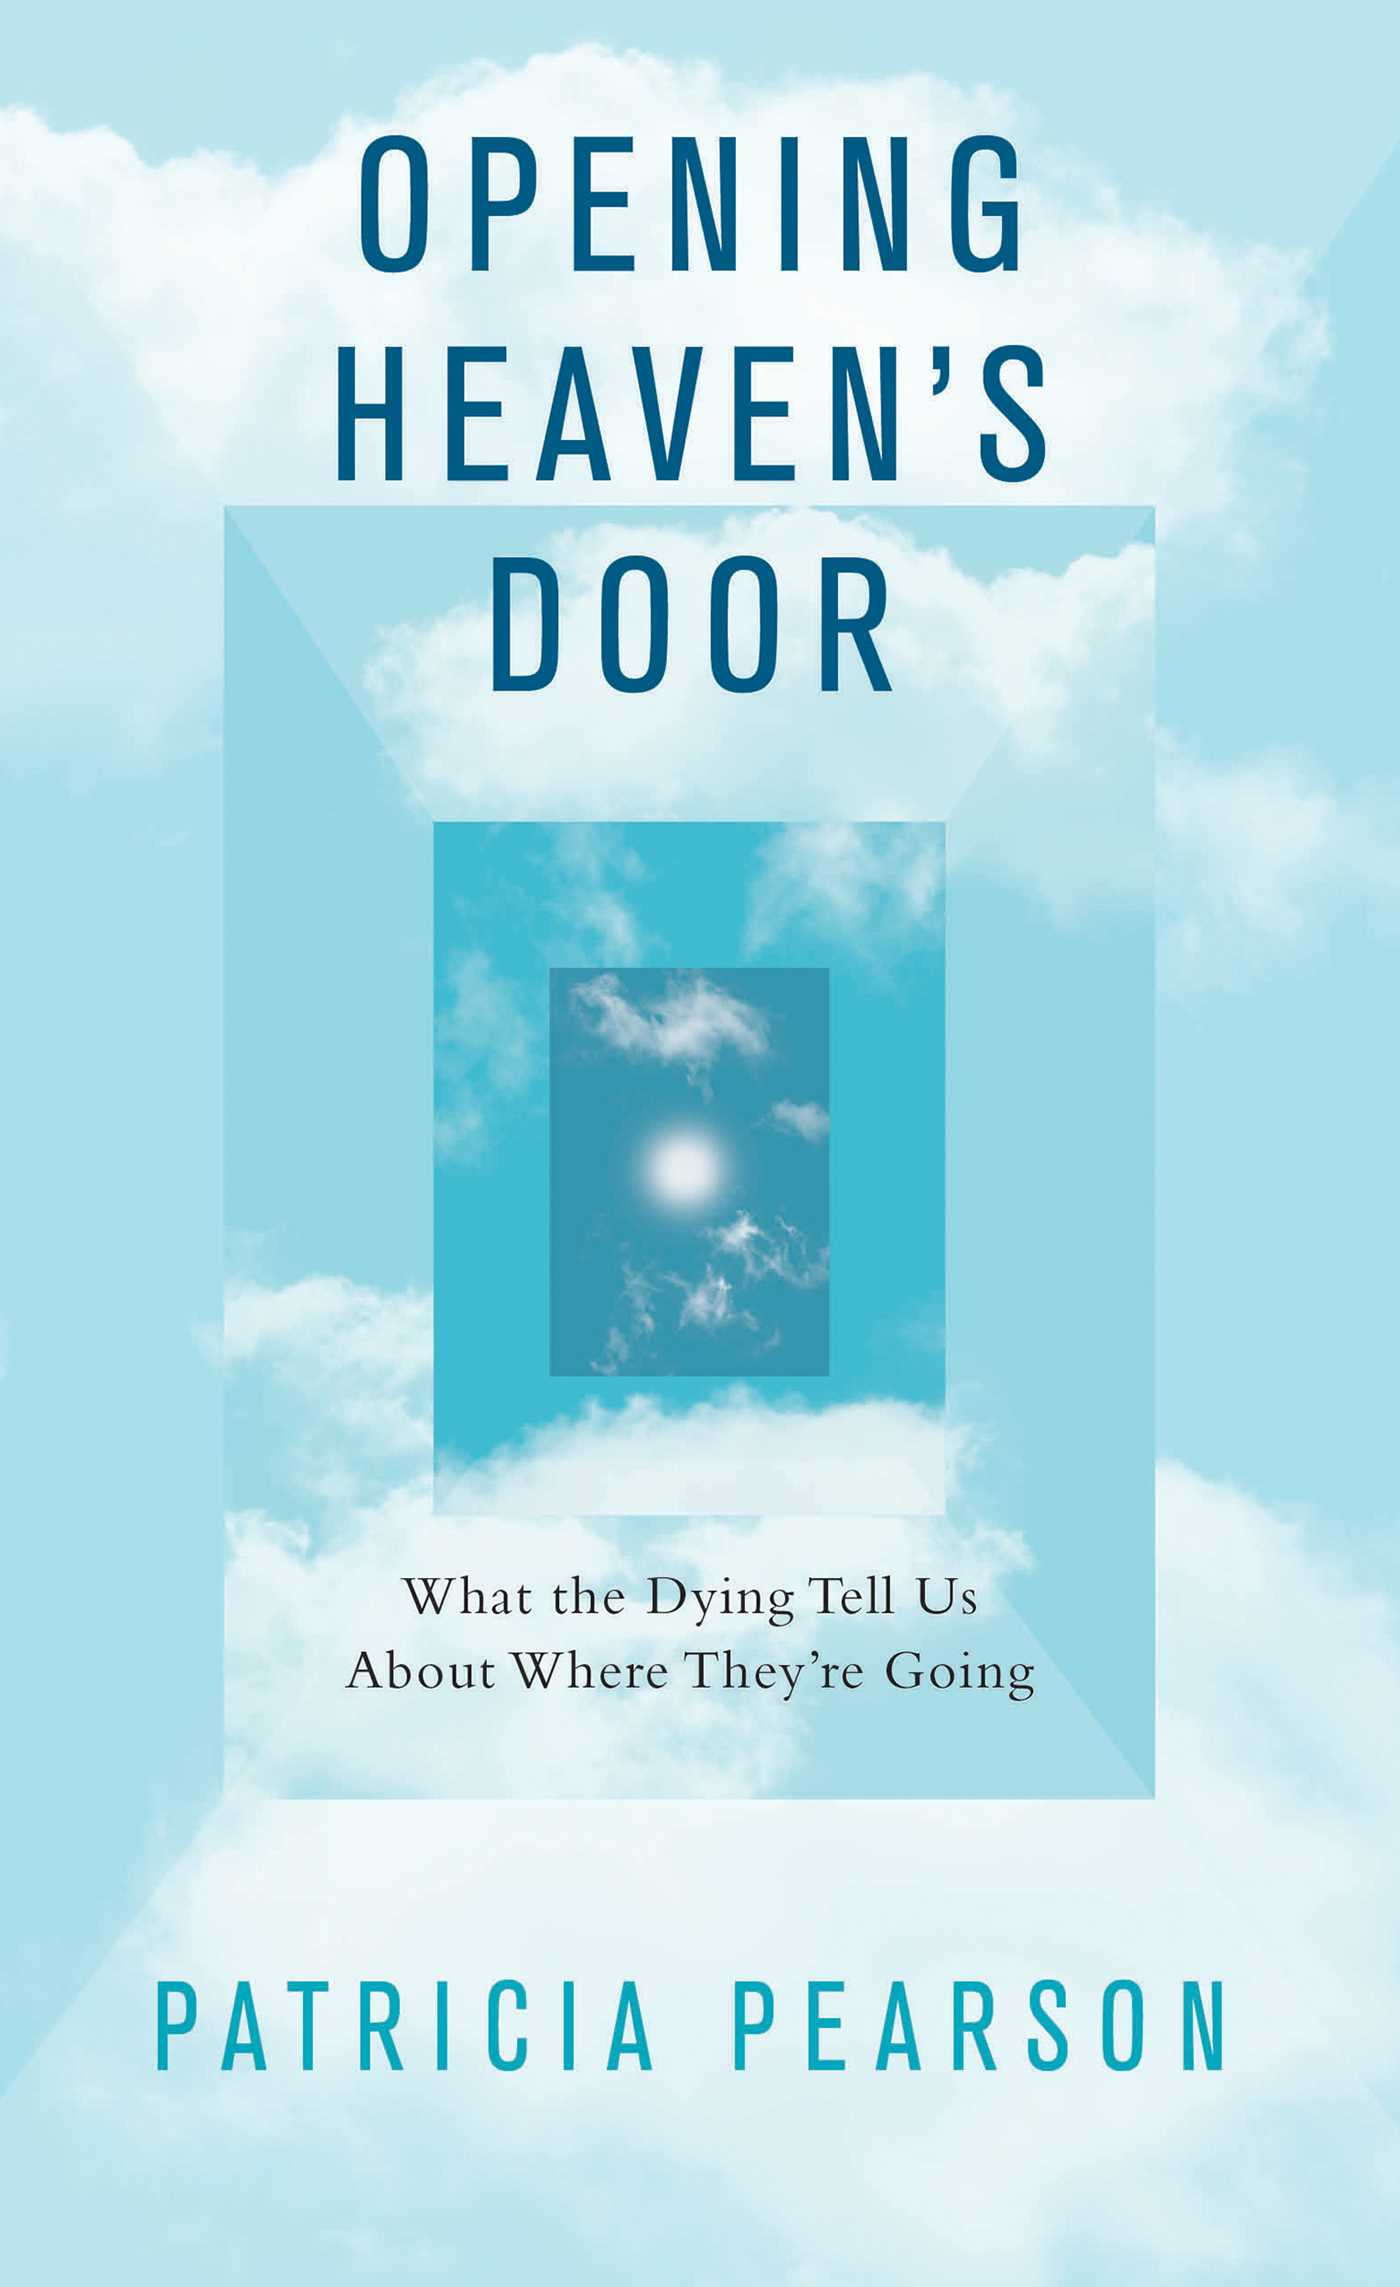 Opening Heaven's Door What the Dying Tell Us About Where They're Going